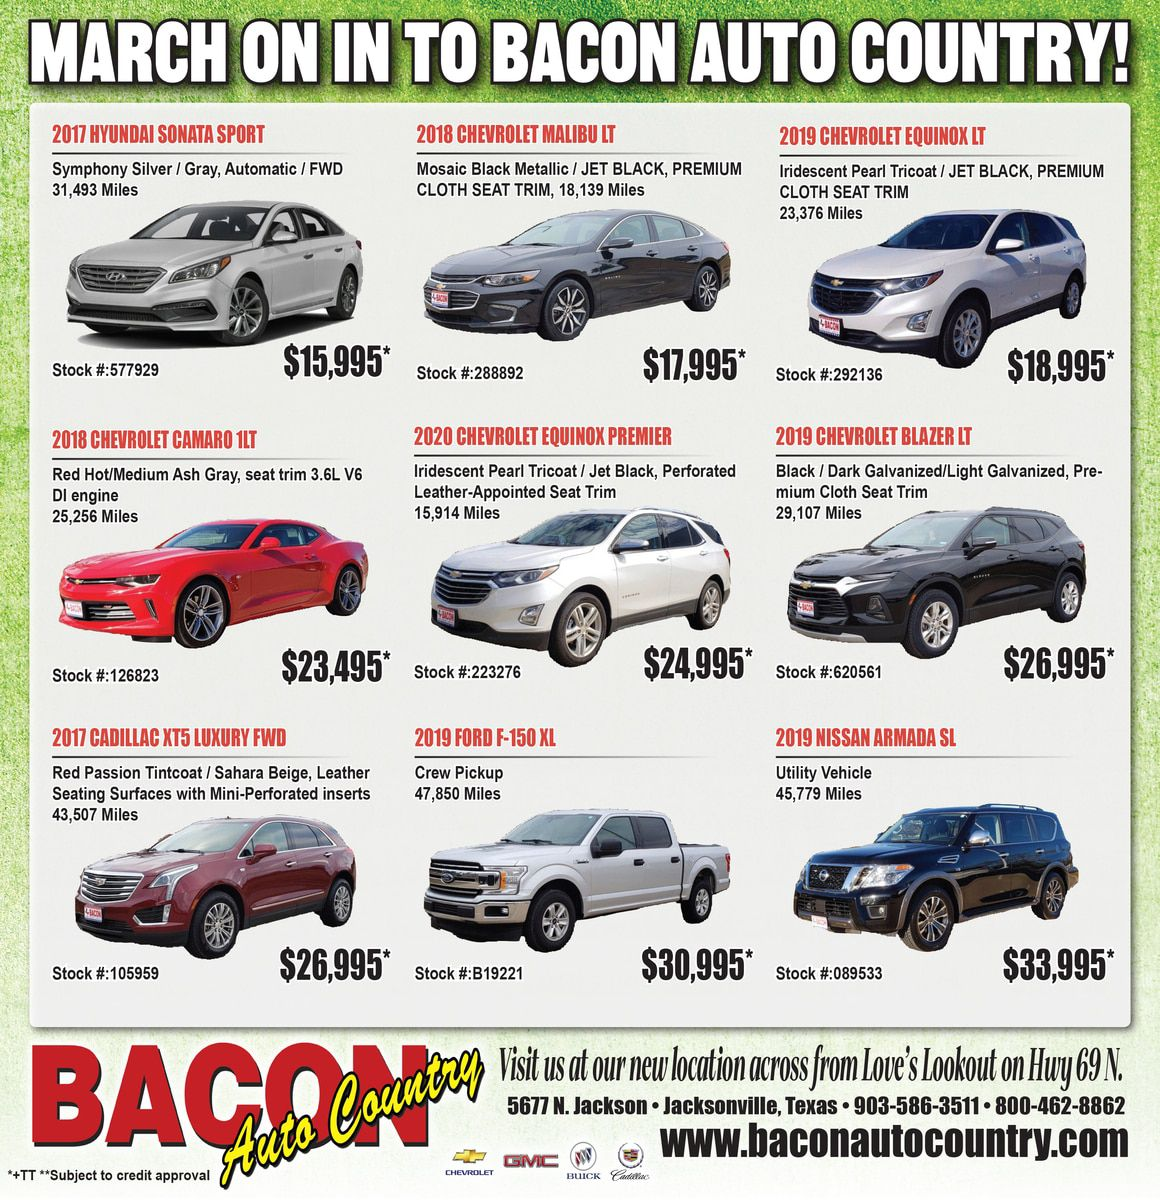 MARCH ON IN TO SAVINGS AT BACON AUTO COUNTRY